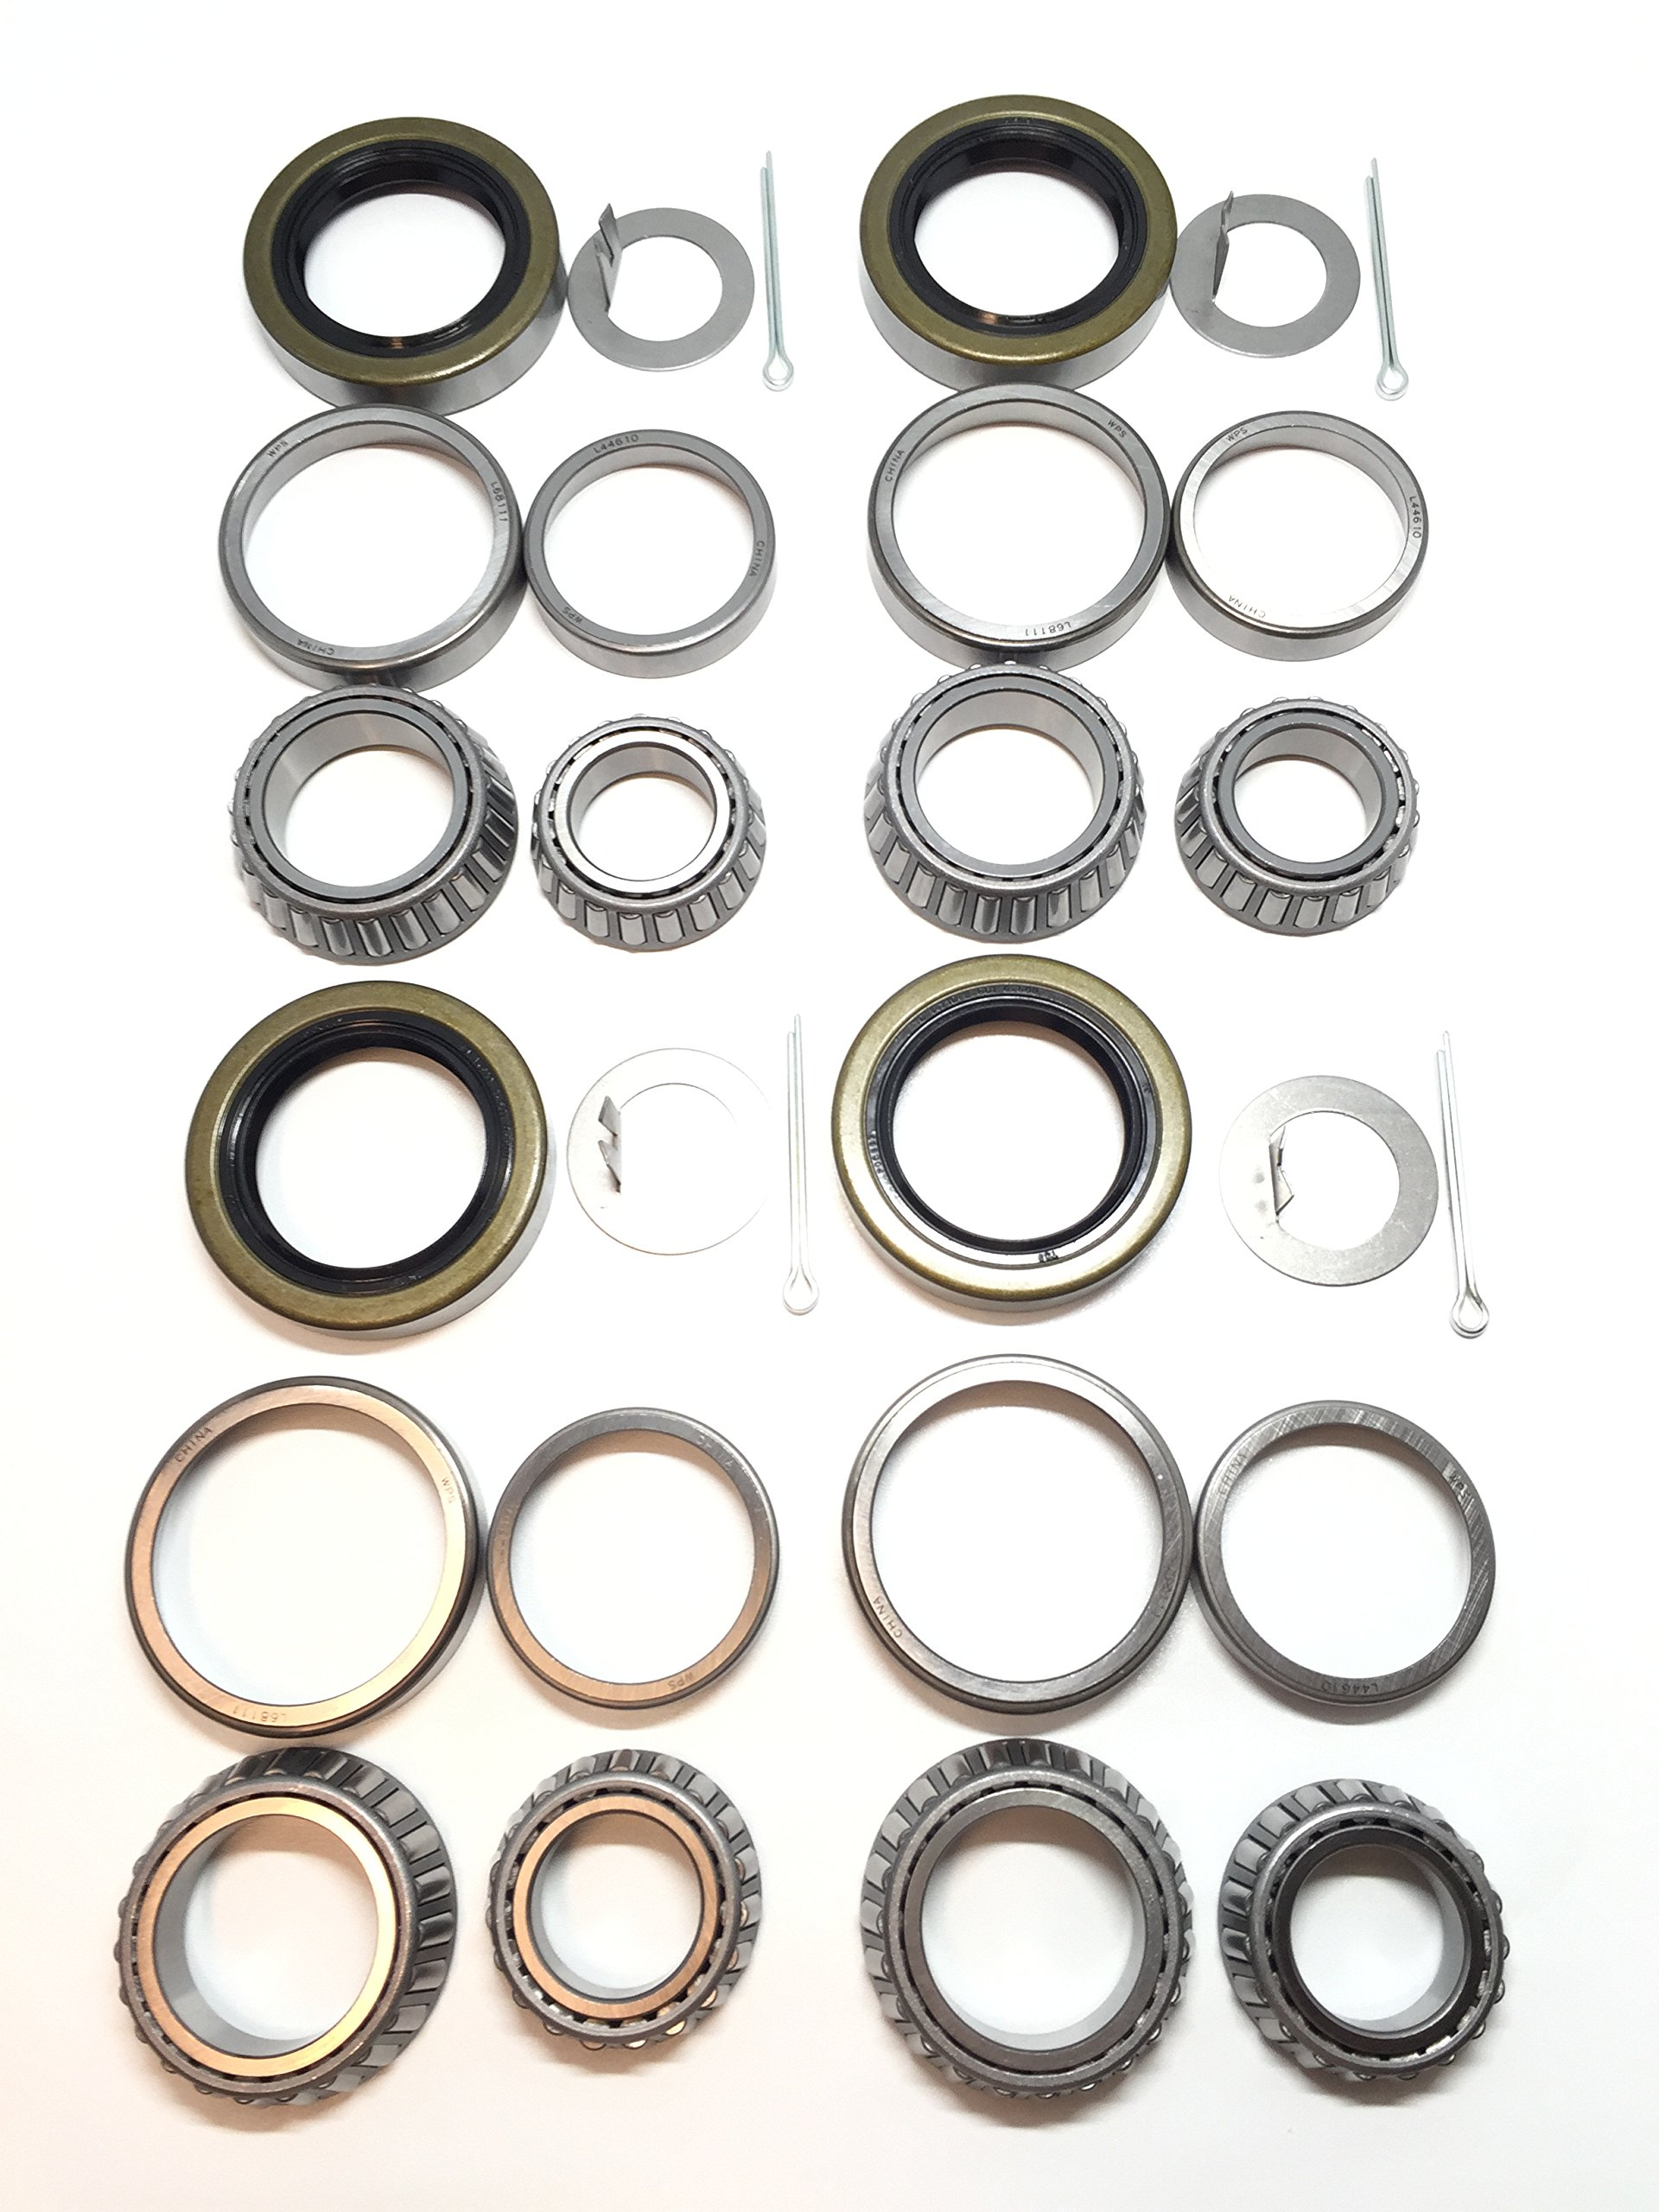 (Set of 4) WPS 3500# Trailer Tandem Axle Bearing Kits L68149 L44649 Grease Seal 10-19 I.D. 1.719'' for #84 Spindle by WPS Western Power Sports